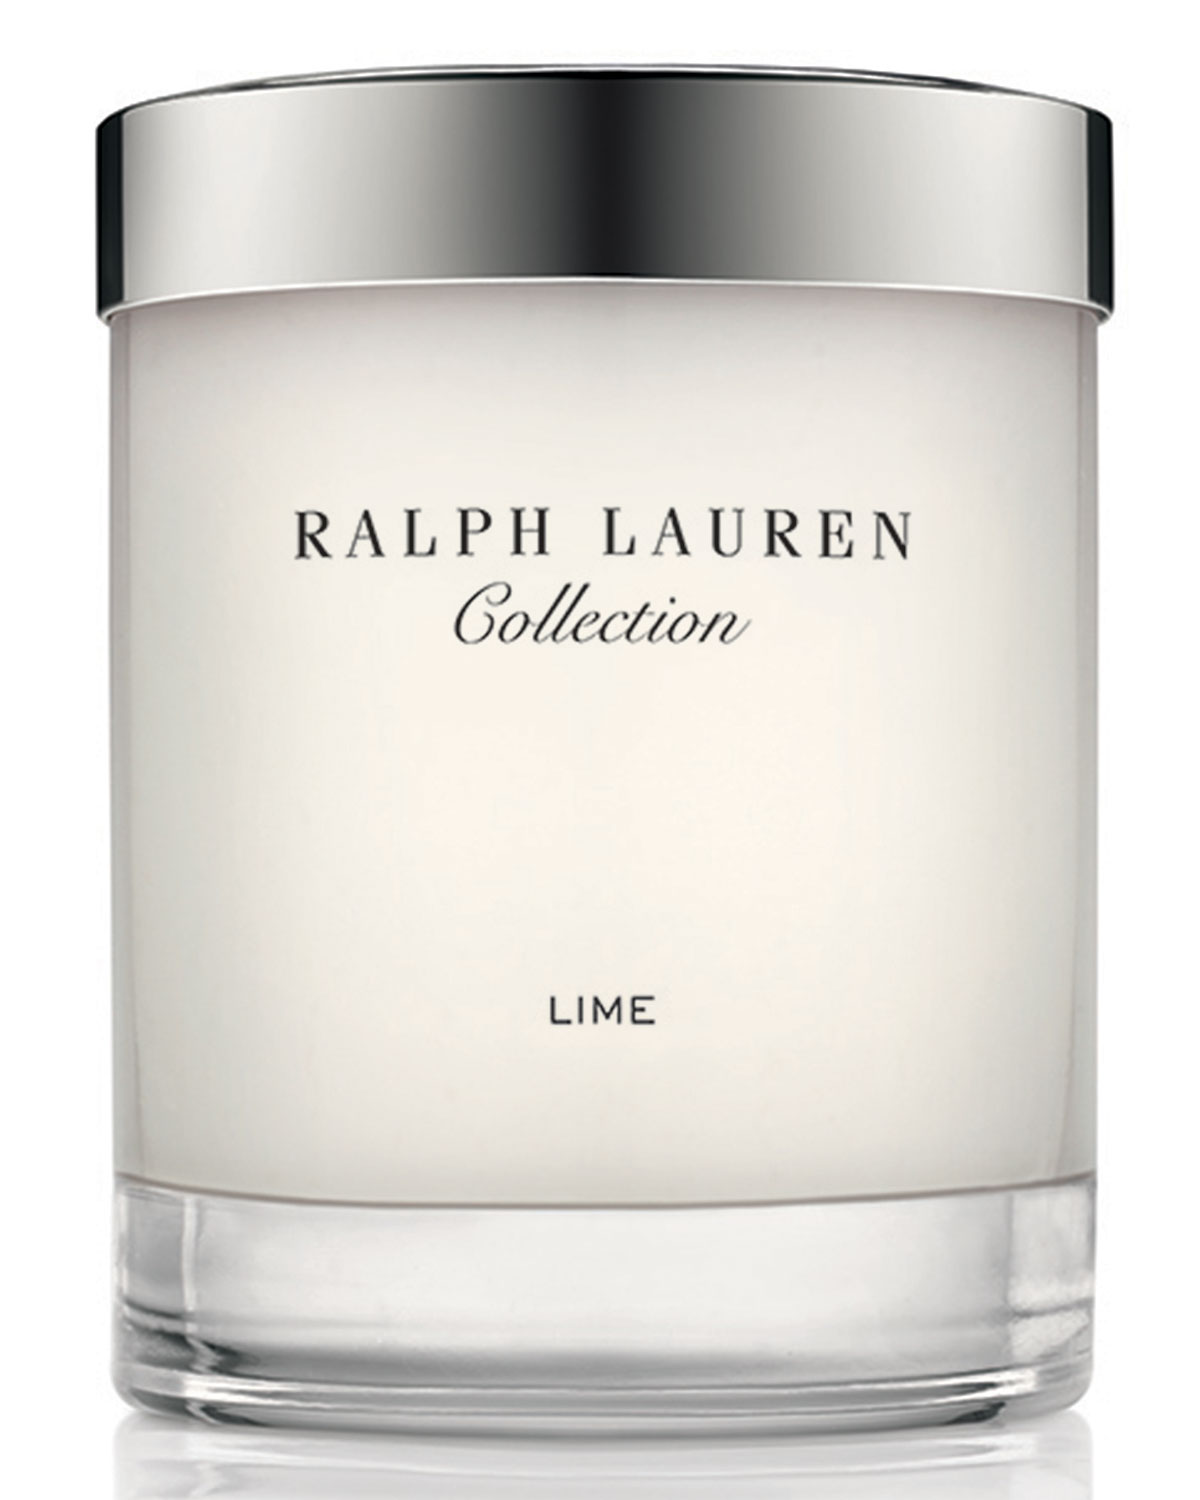 Ralph Lauren Lime Candle, 210g